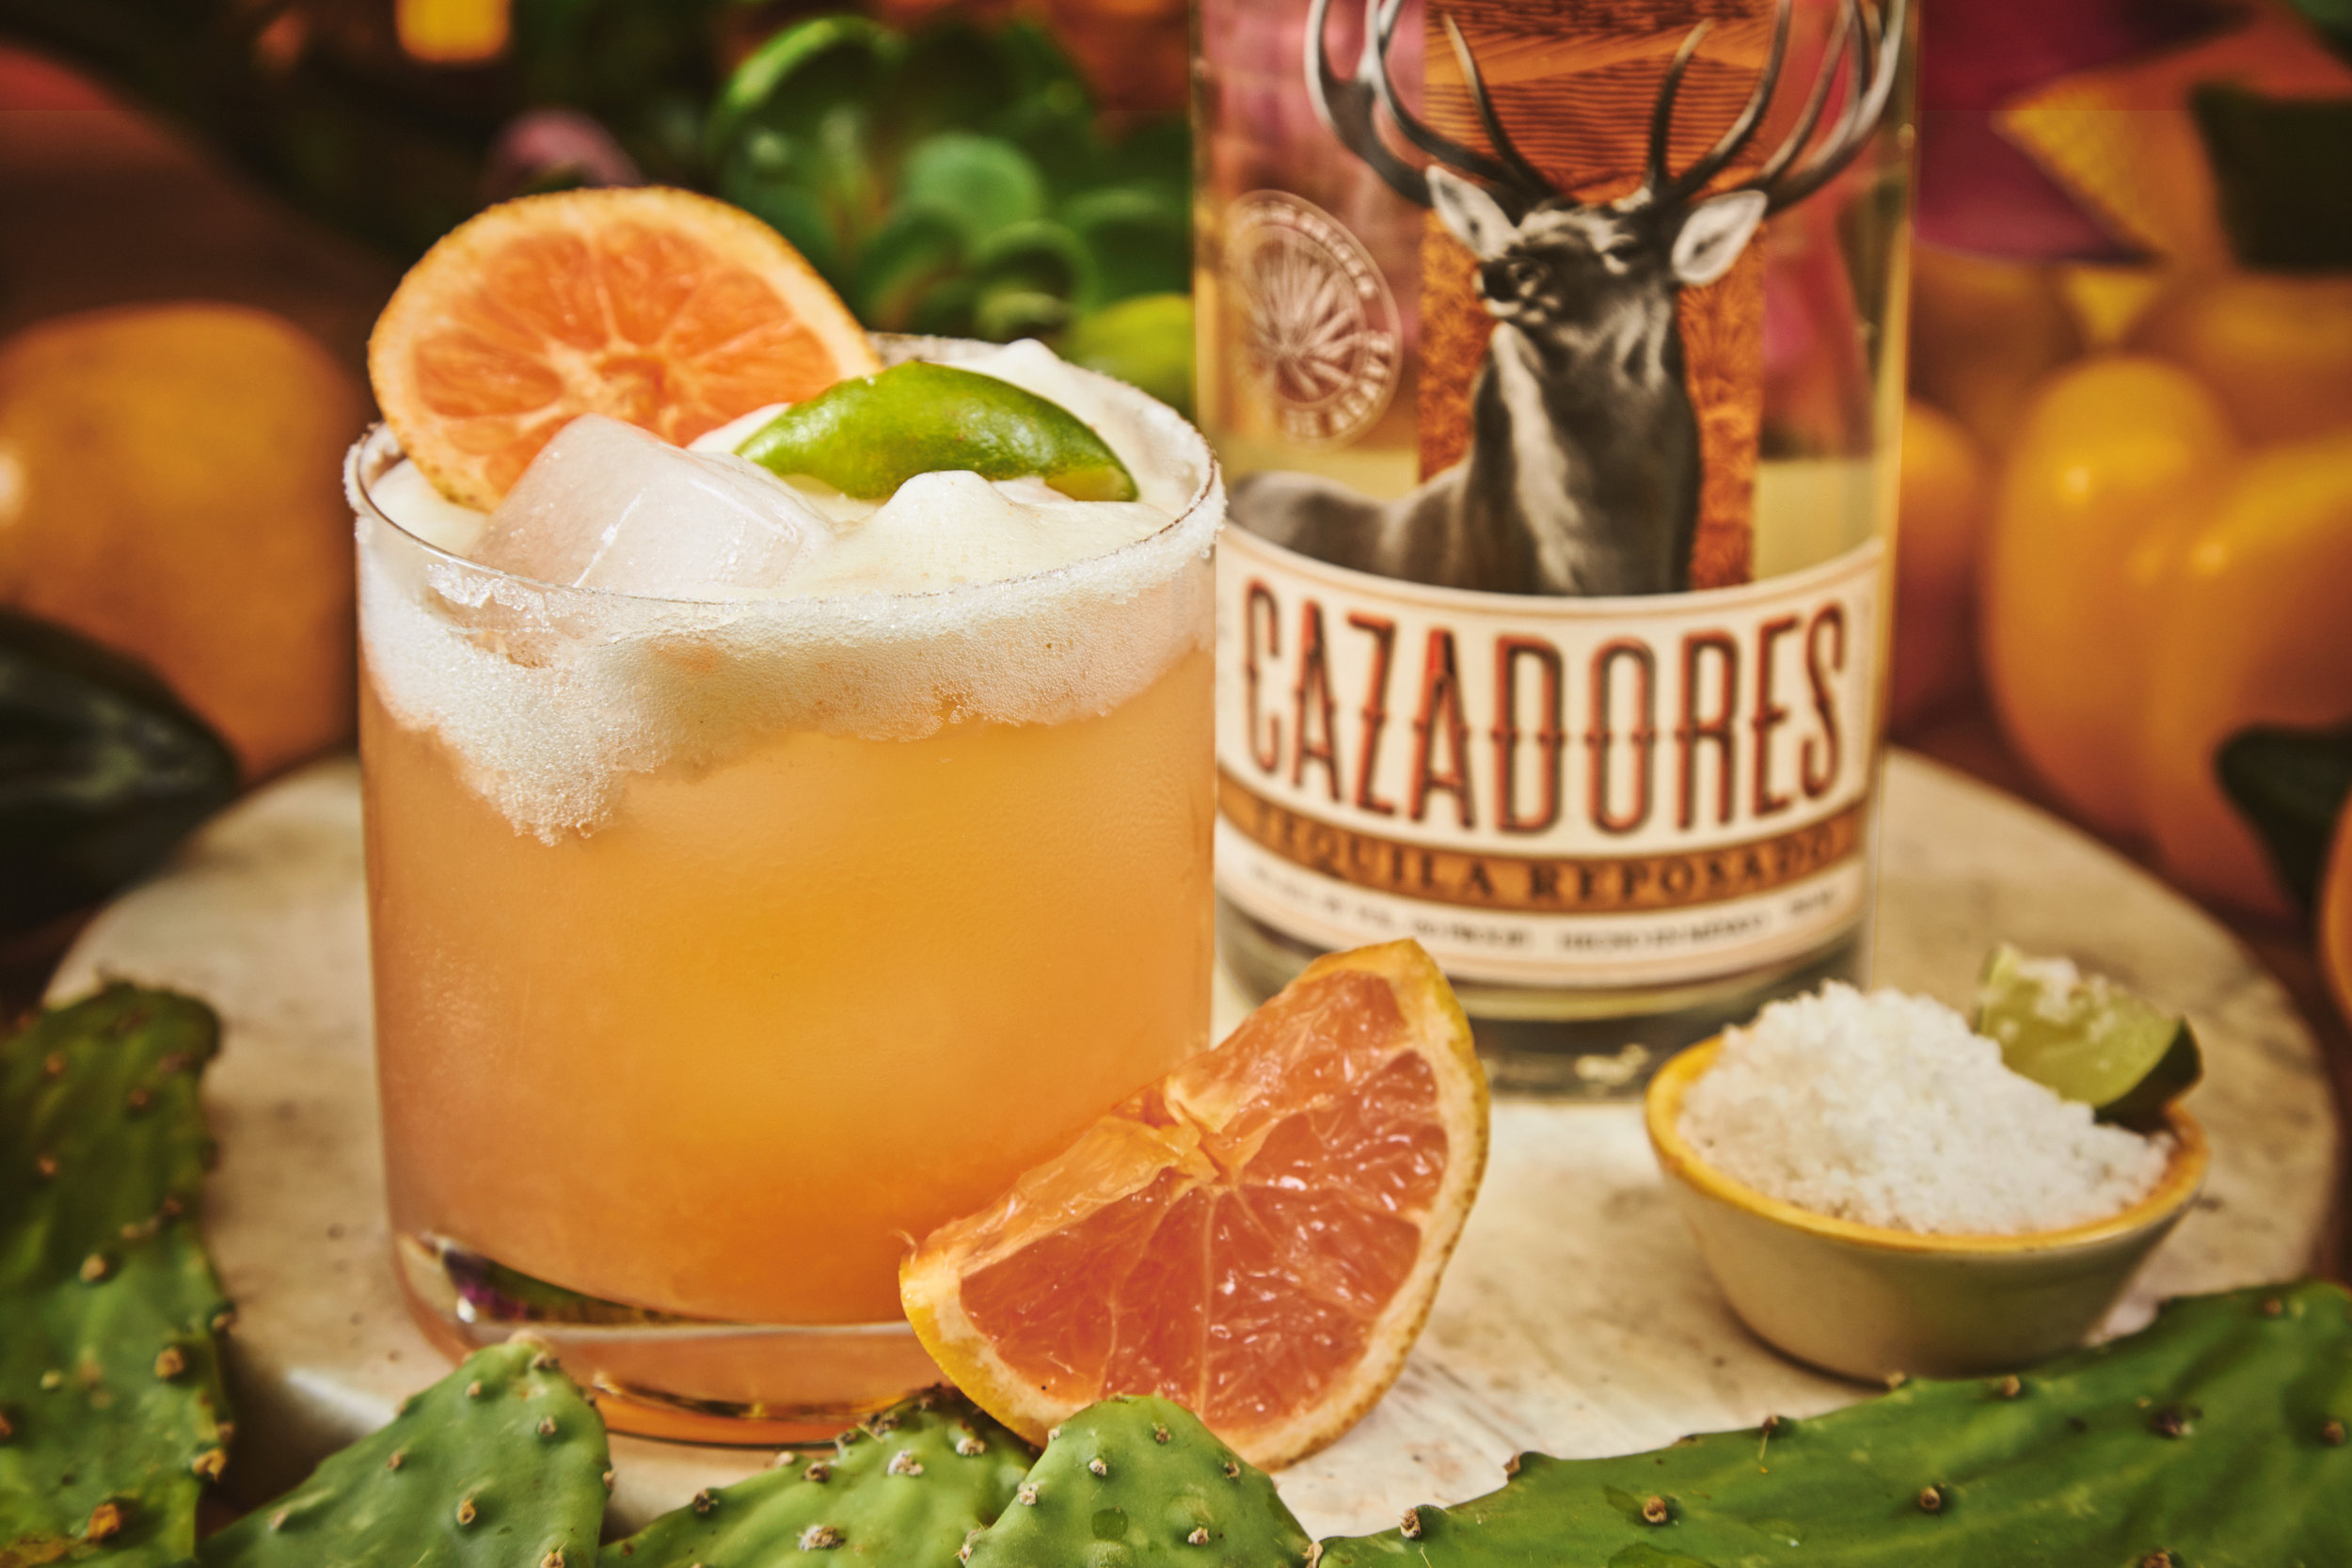 Photography, courtesy of Cazadores